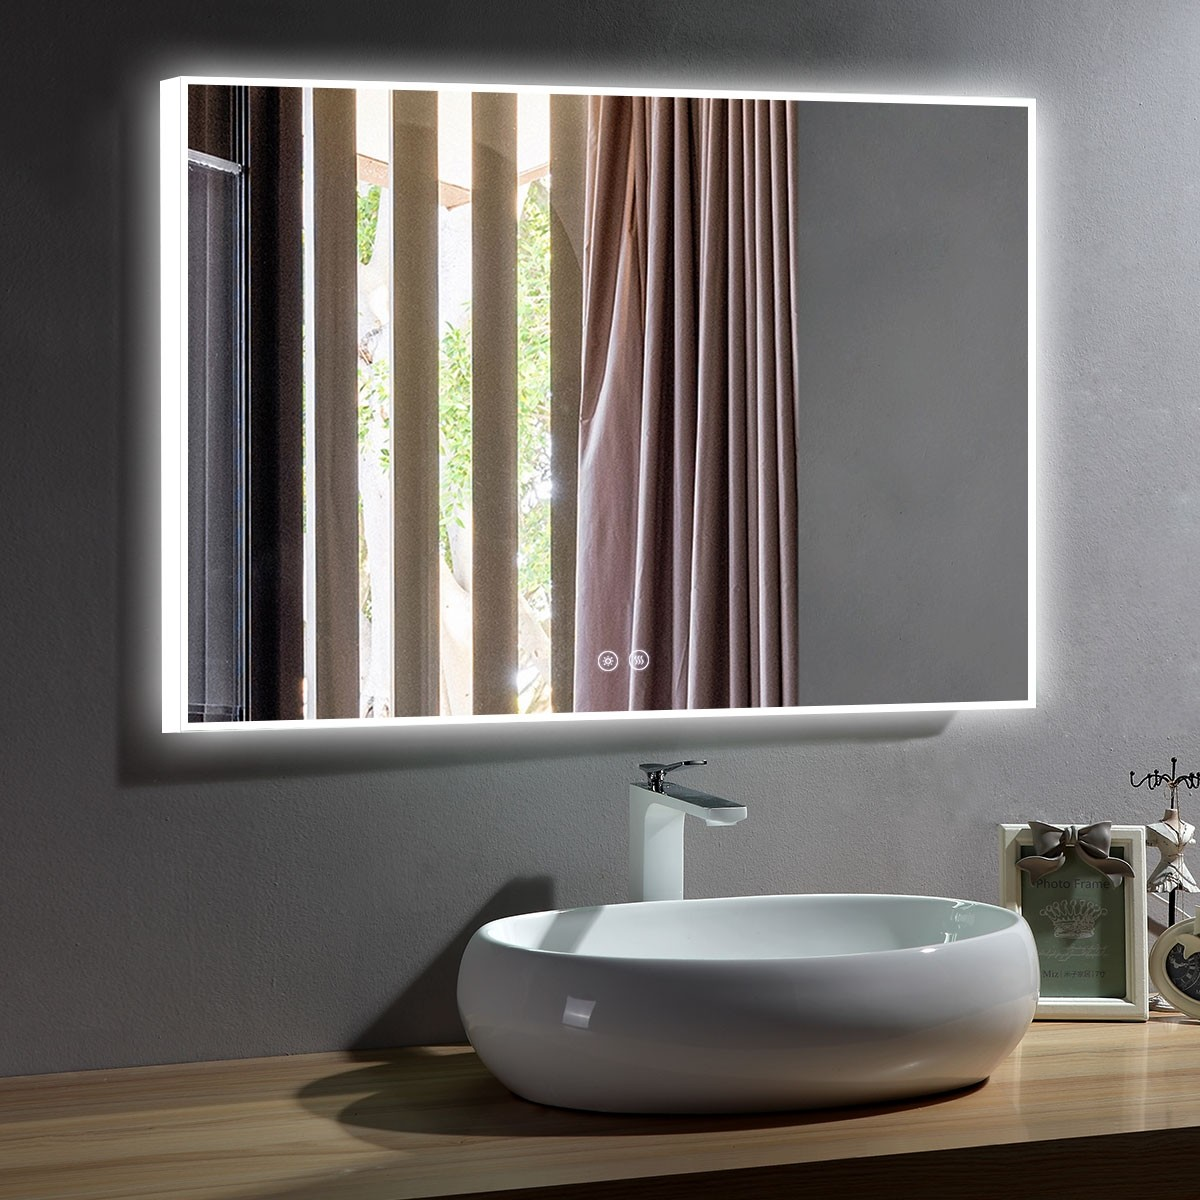 DECORAPORT 48 x 36 Inch LED Bathroom Mirror with Touch Button,Anti Fog, Dimmable, Bluetooth Speakers, Vertical & Horizontal Mount (D423-4836A)